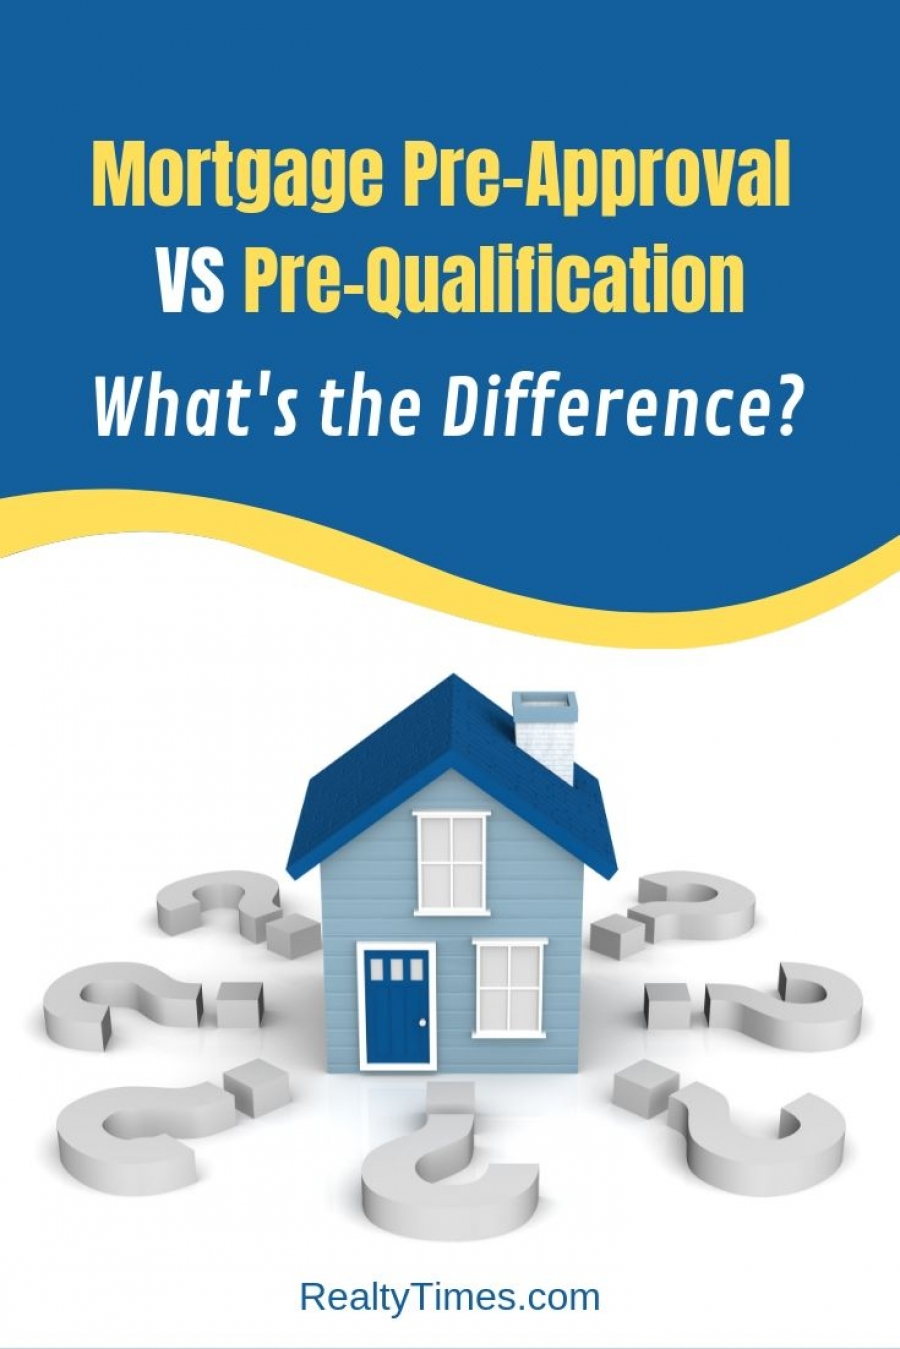 Mortgage Pre-Approval VS Pre-Qualification | What's the Difference?